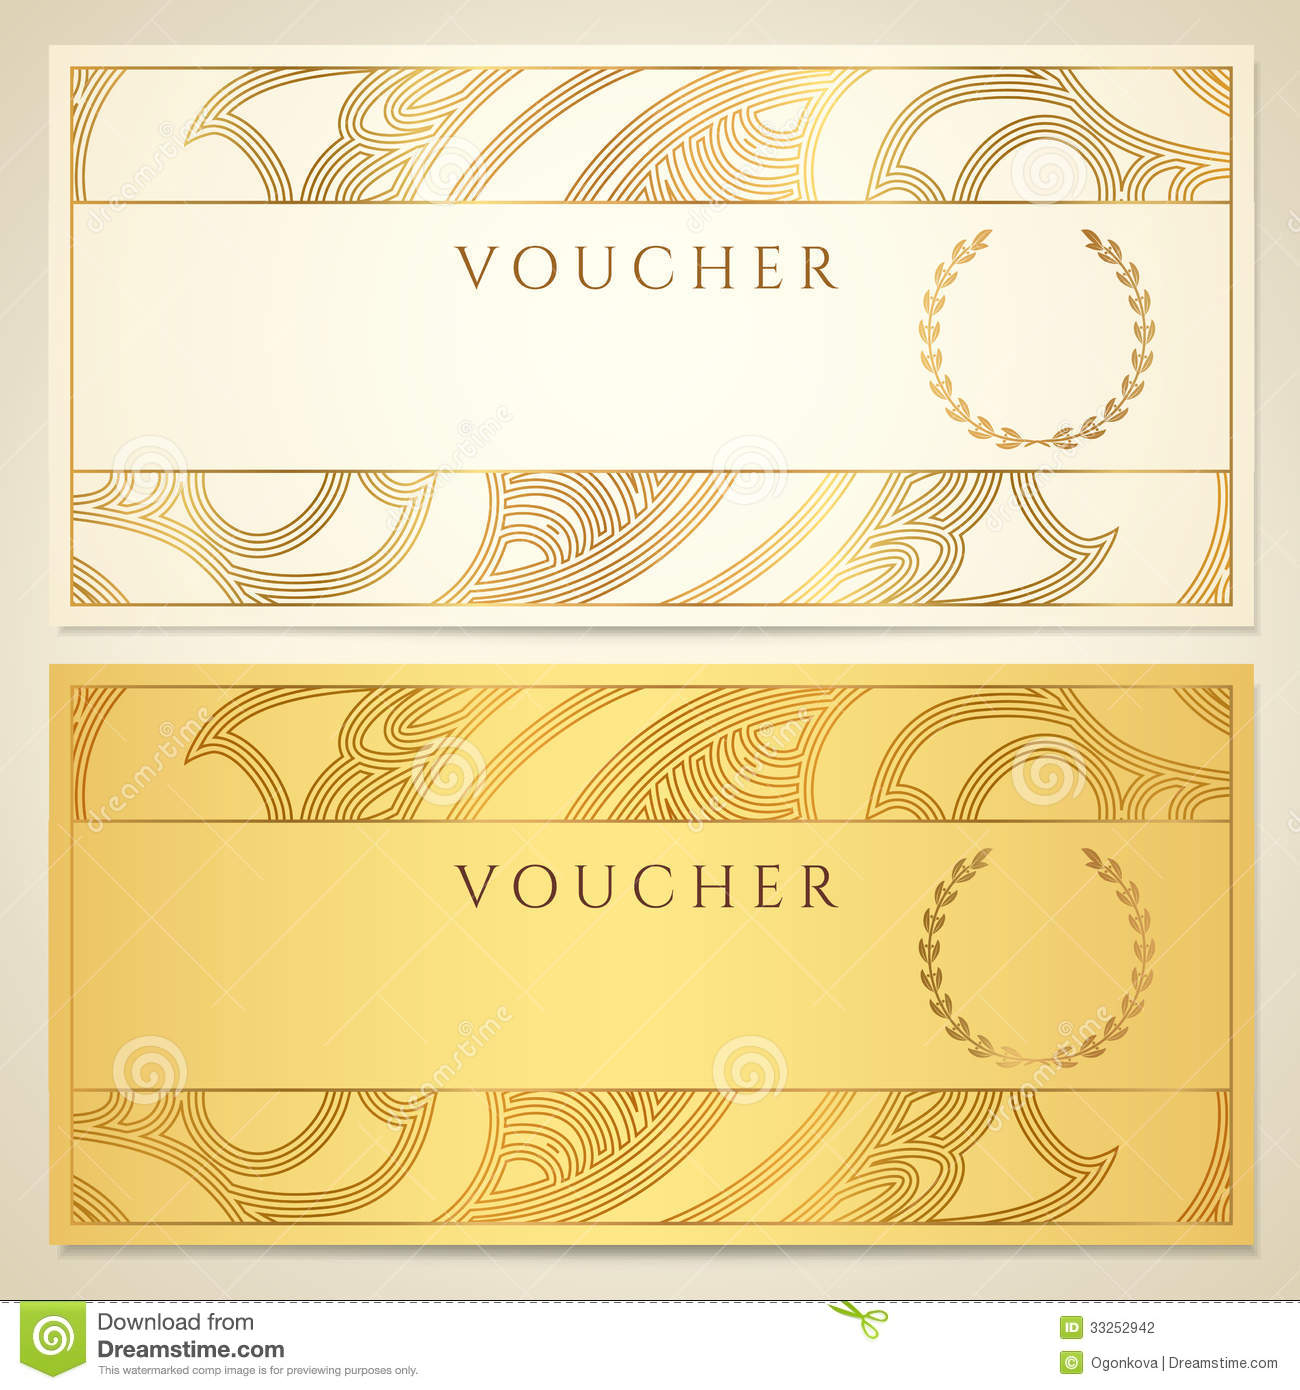 Voucher gift certificate coupon template stock photo image of voucher gift certificate coupon template royalty free stock photo yadclub Image collections